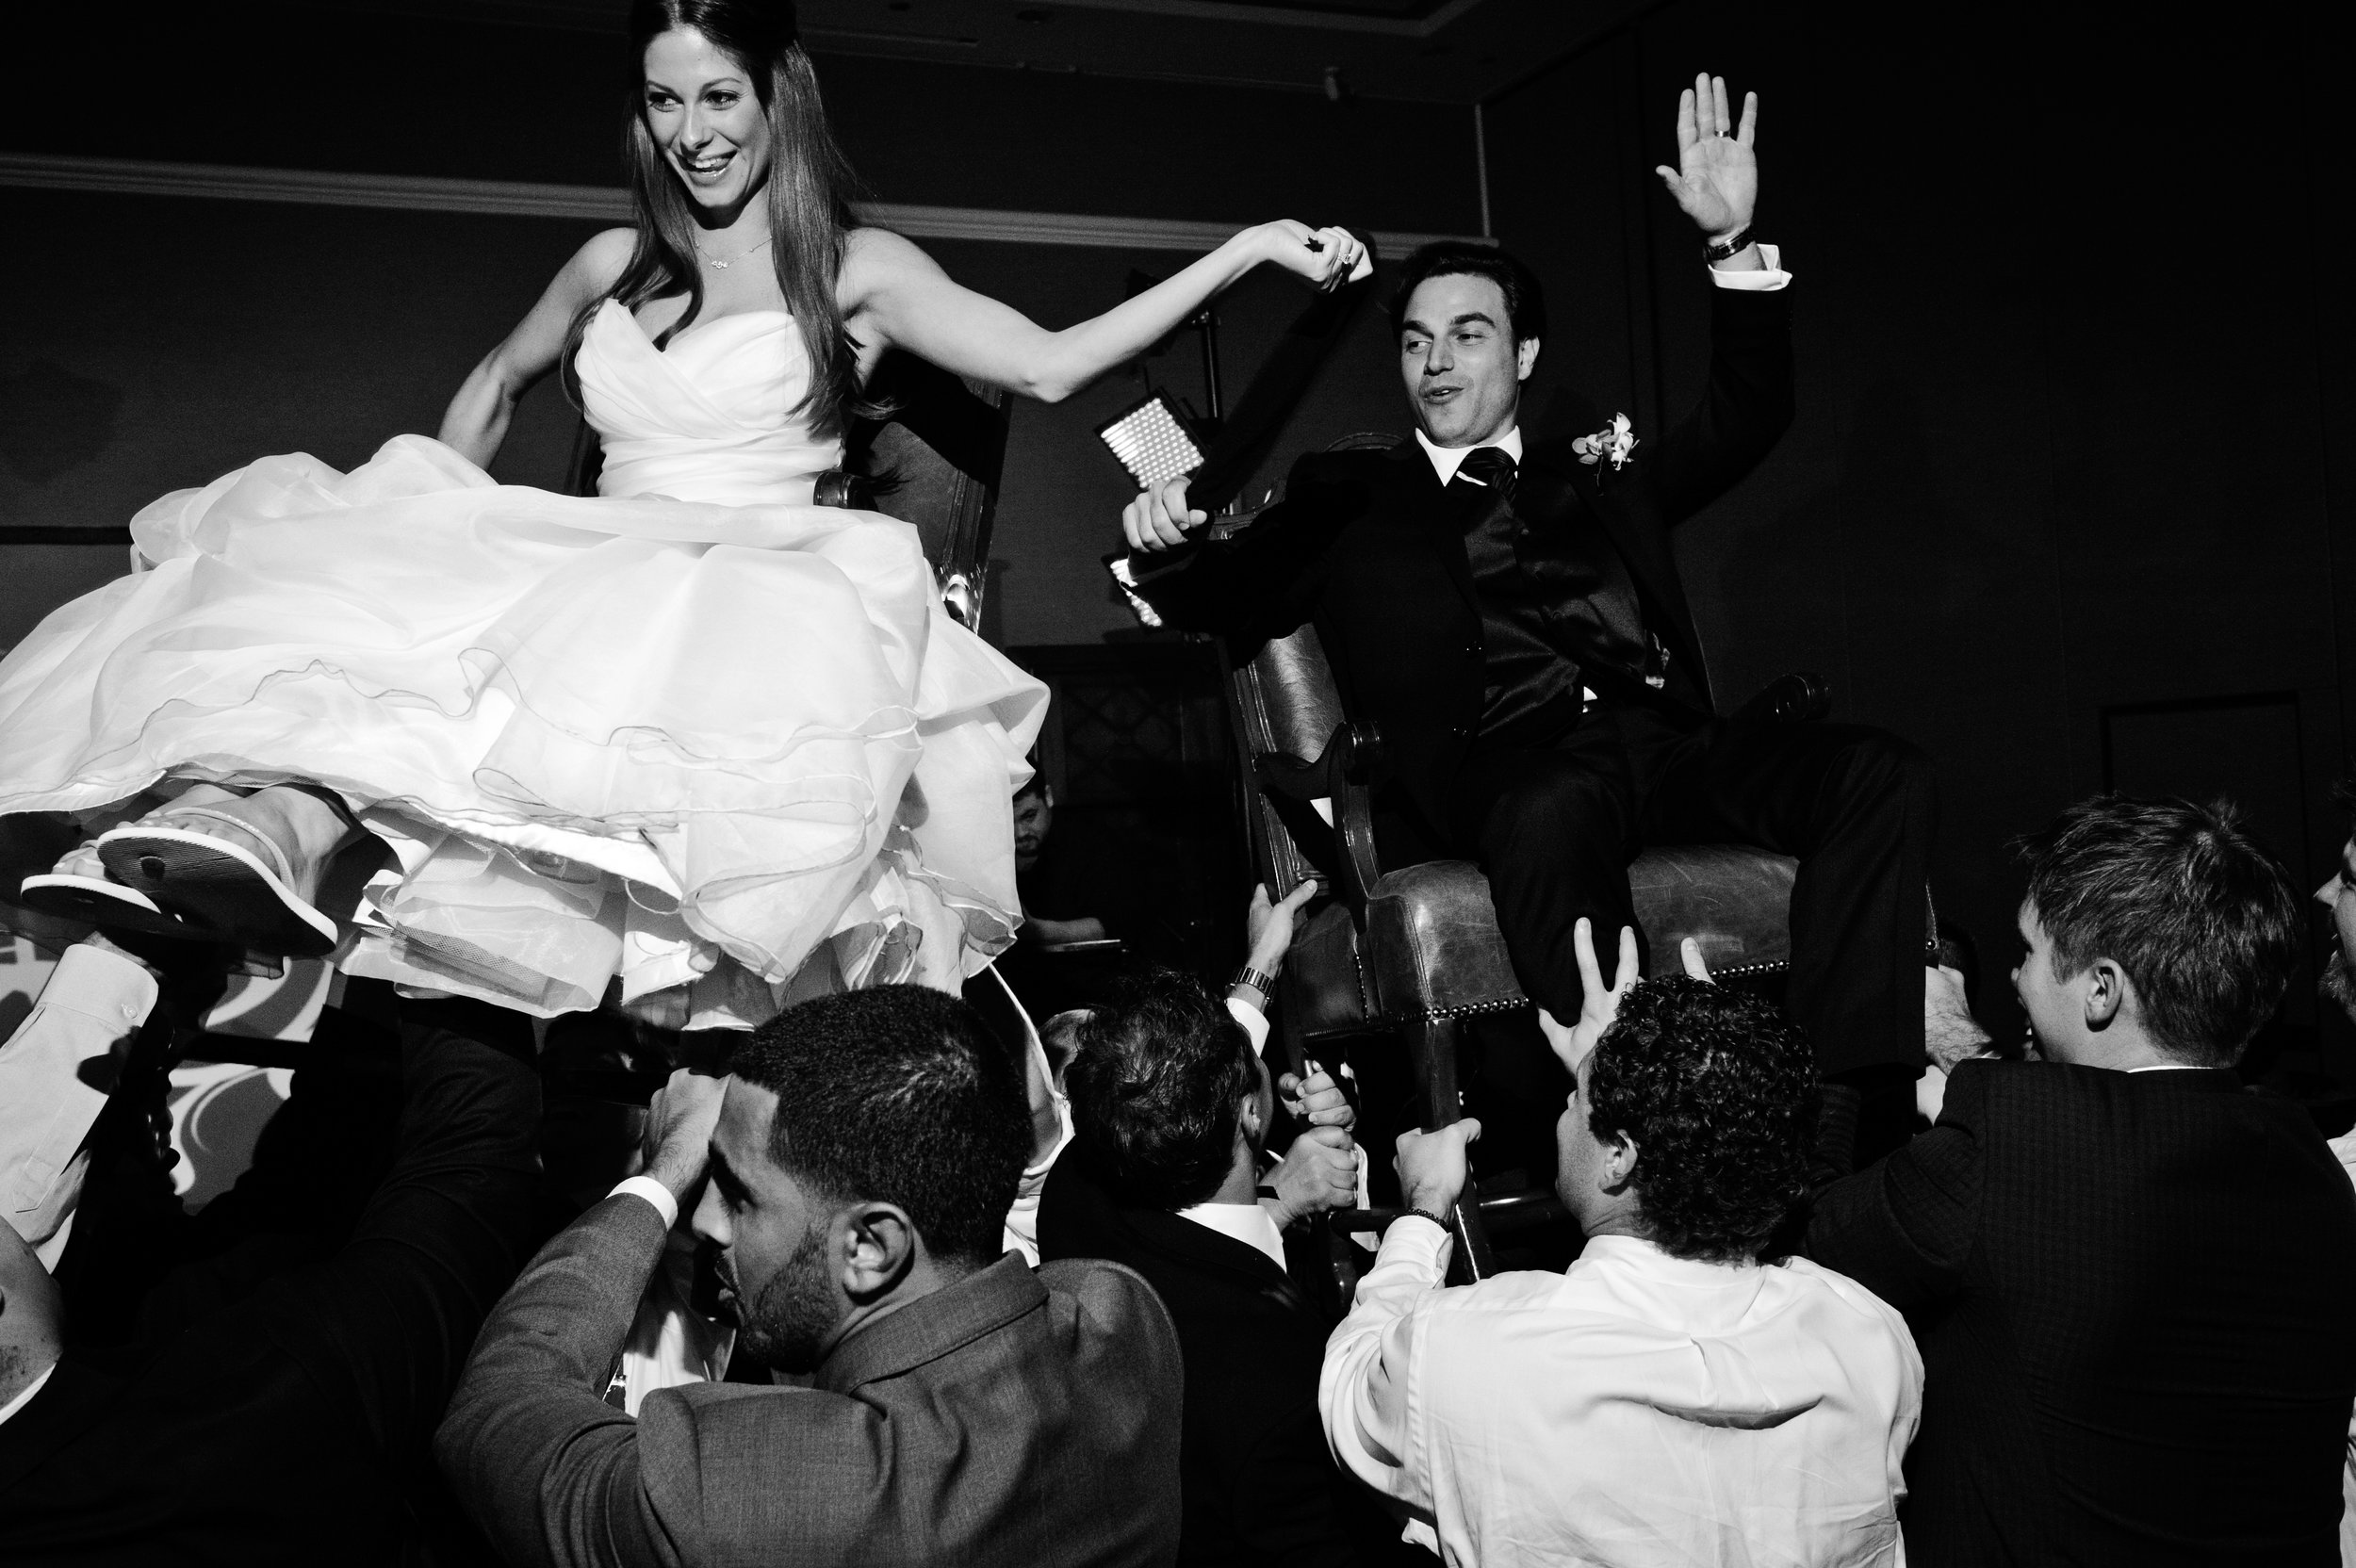 35 bride and groom chair lift bride and groom chair lift together Sergio Photography Life Design Events.JPG